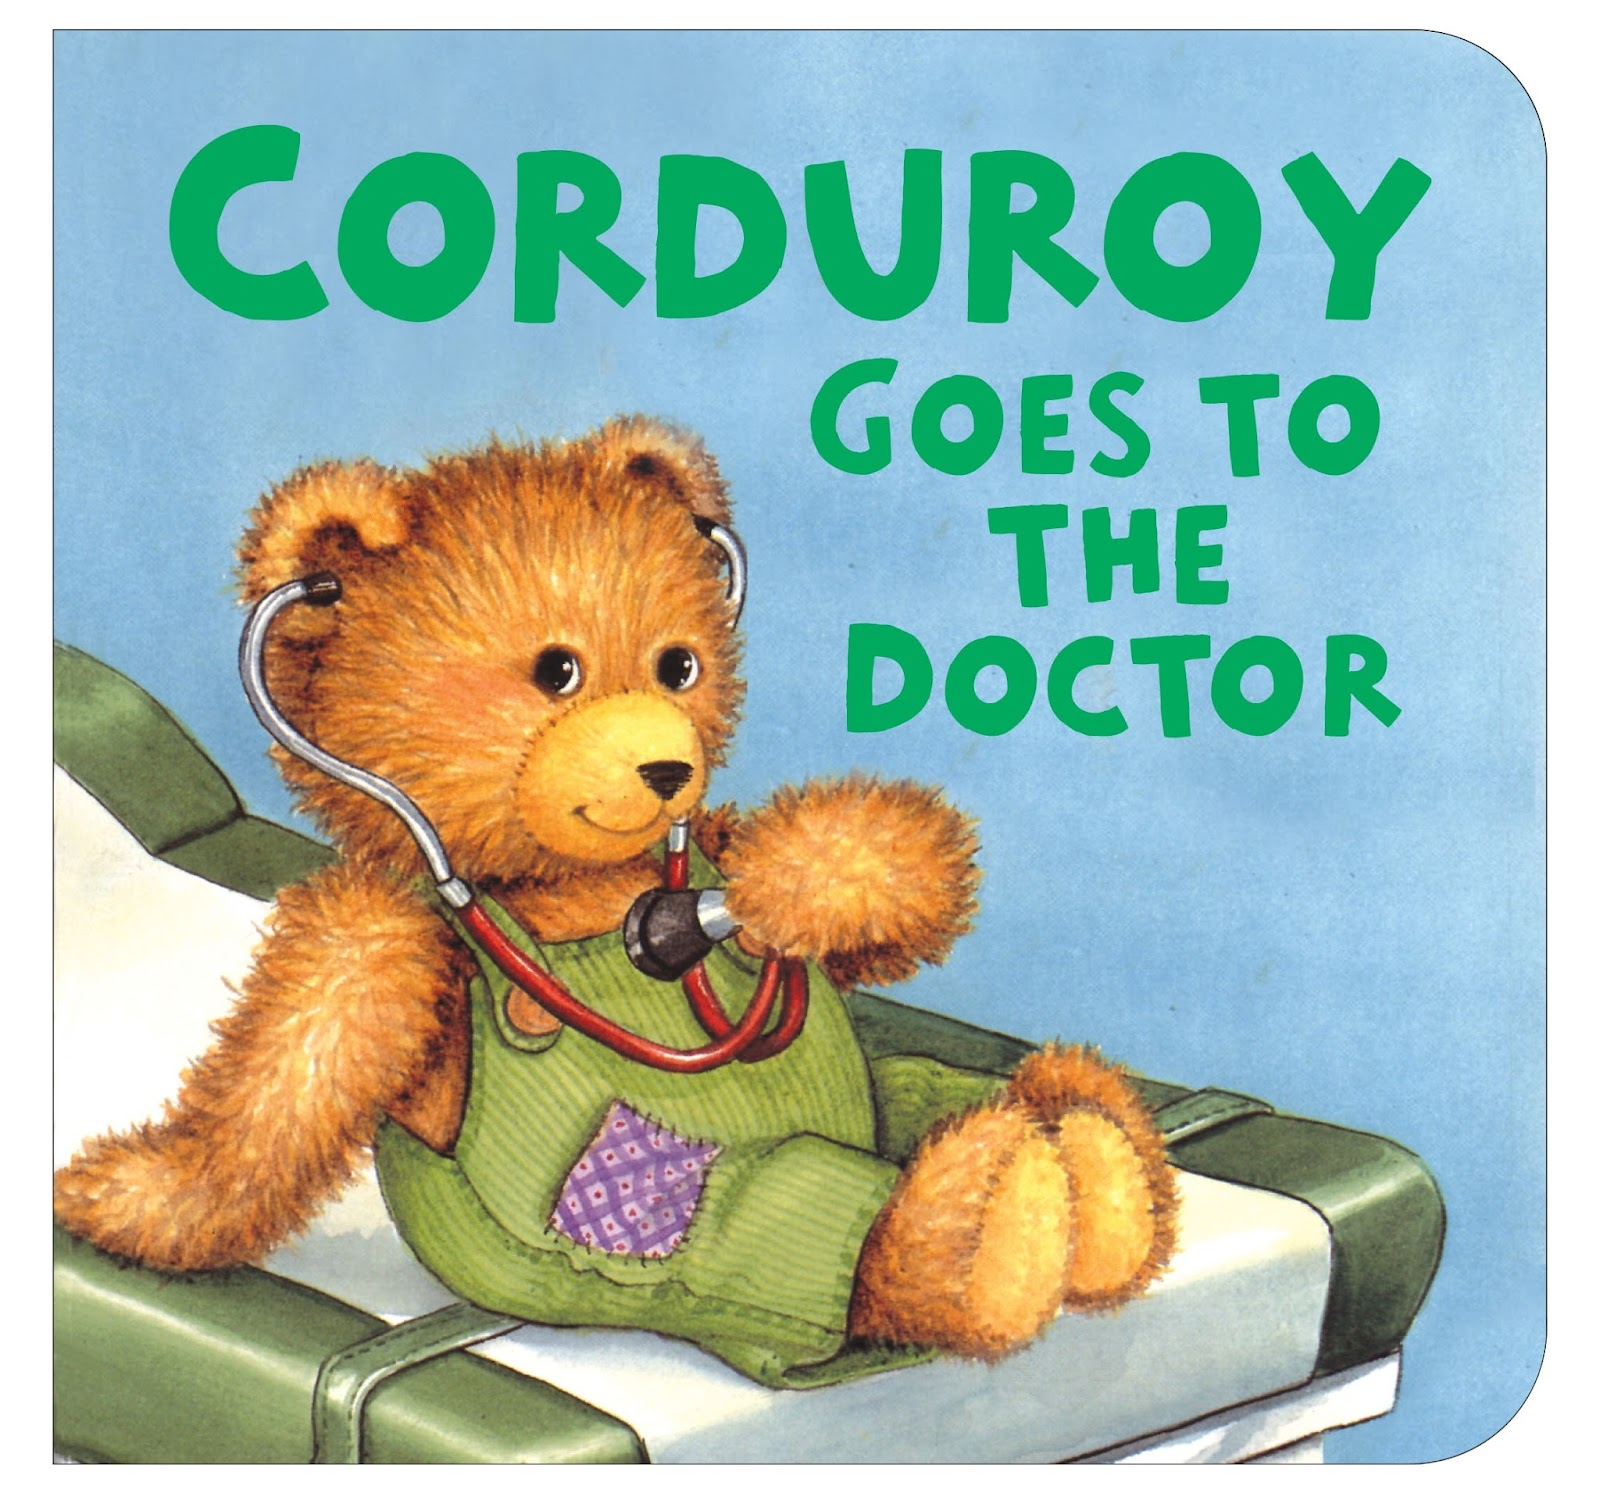 corduroy goes to the doctor.JPG